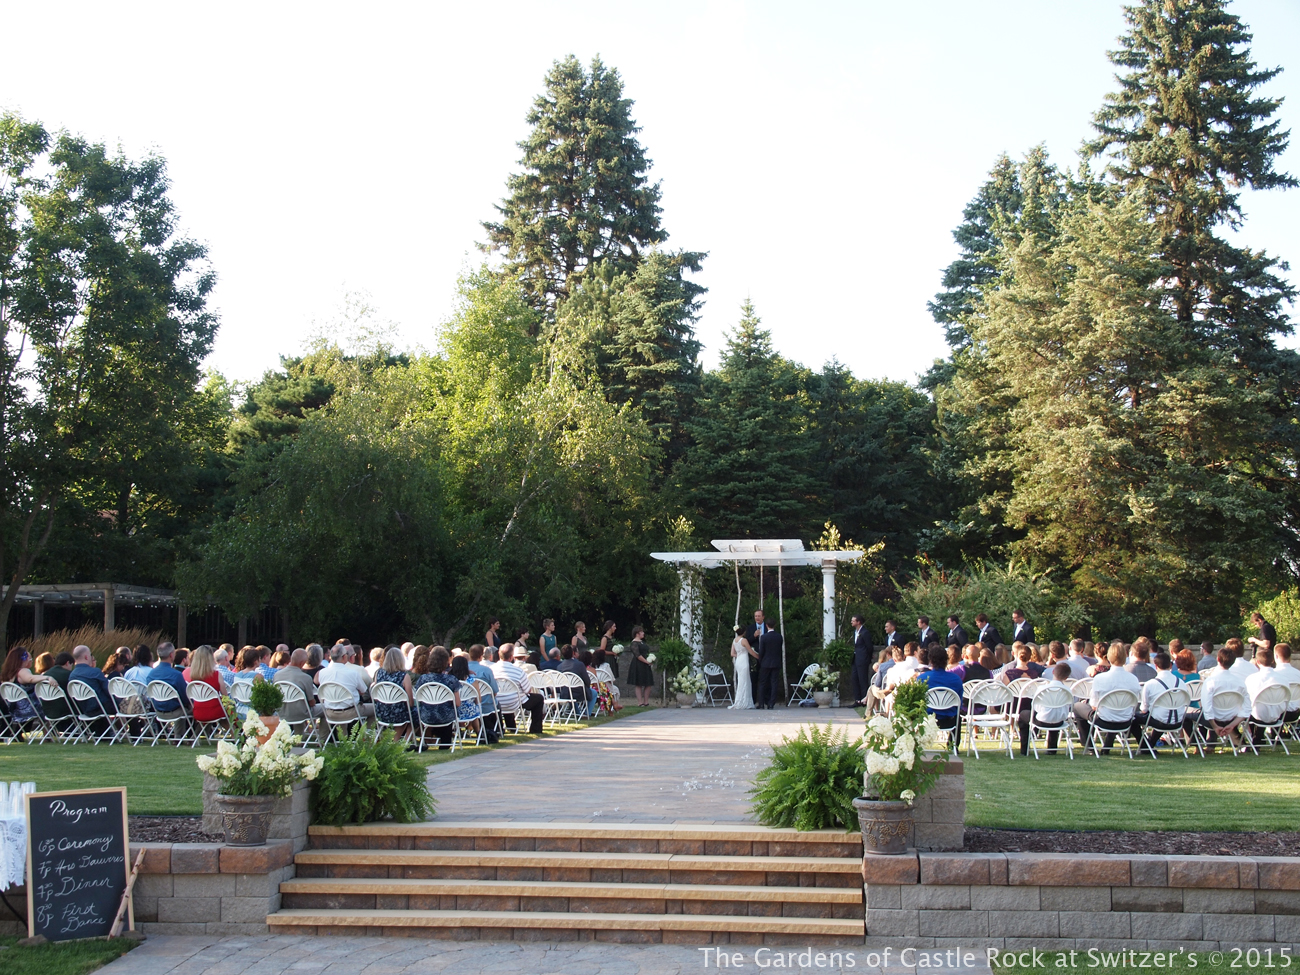 the gardens of castle rock minnesota wedding venue